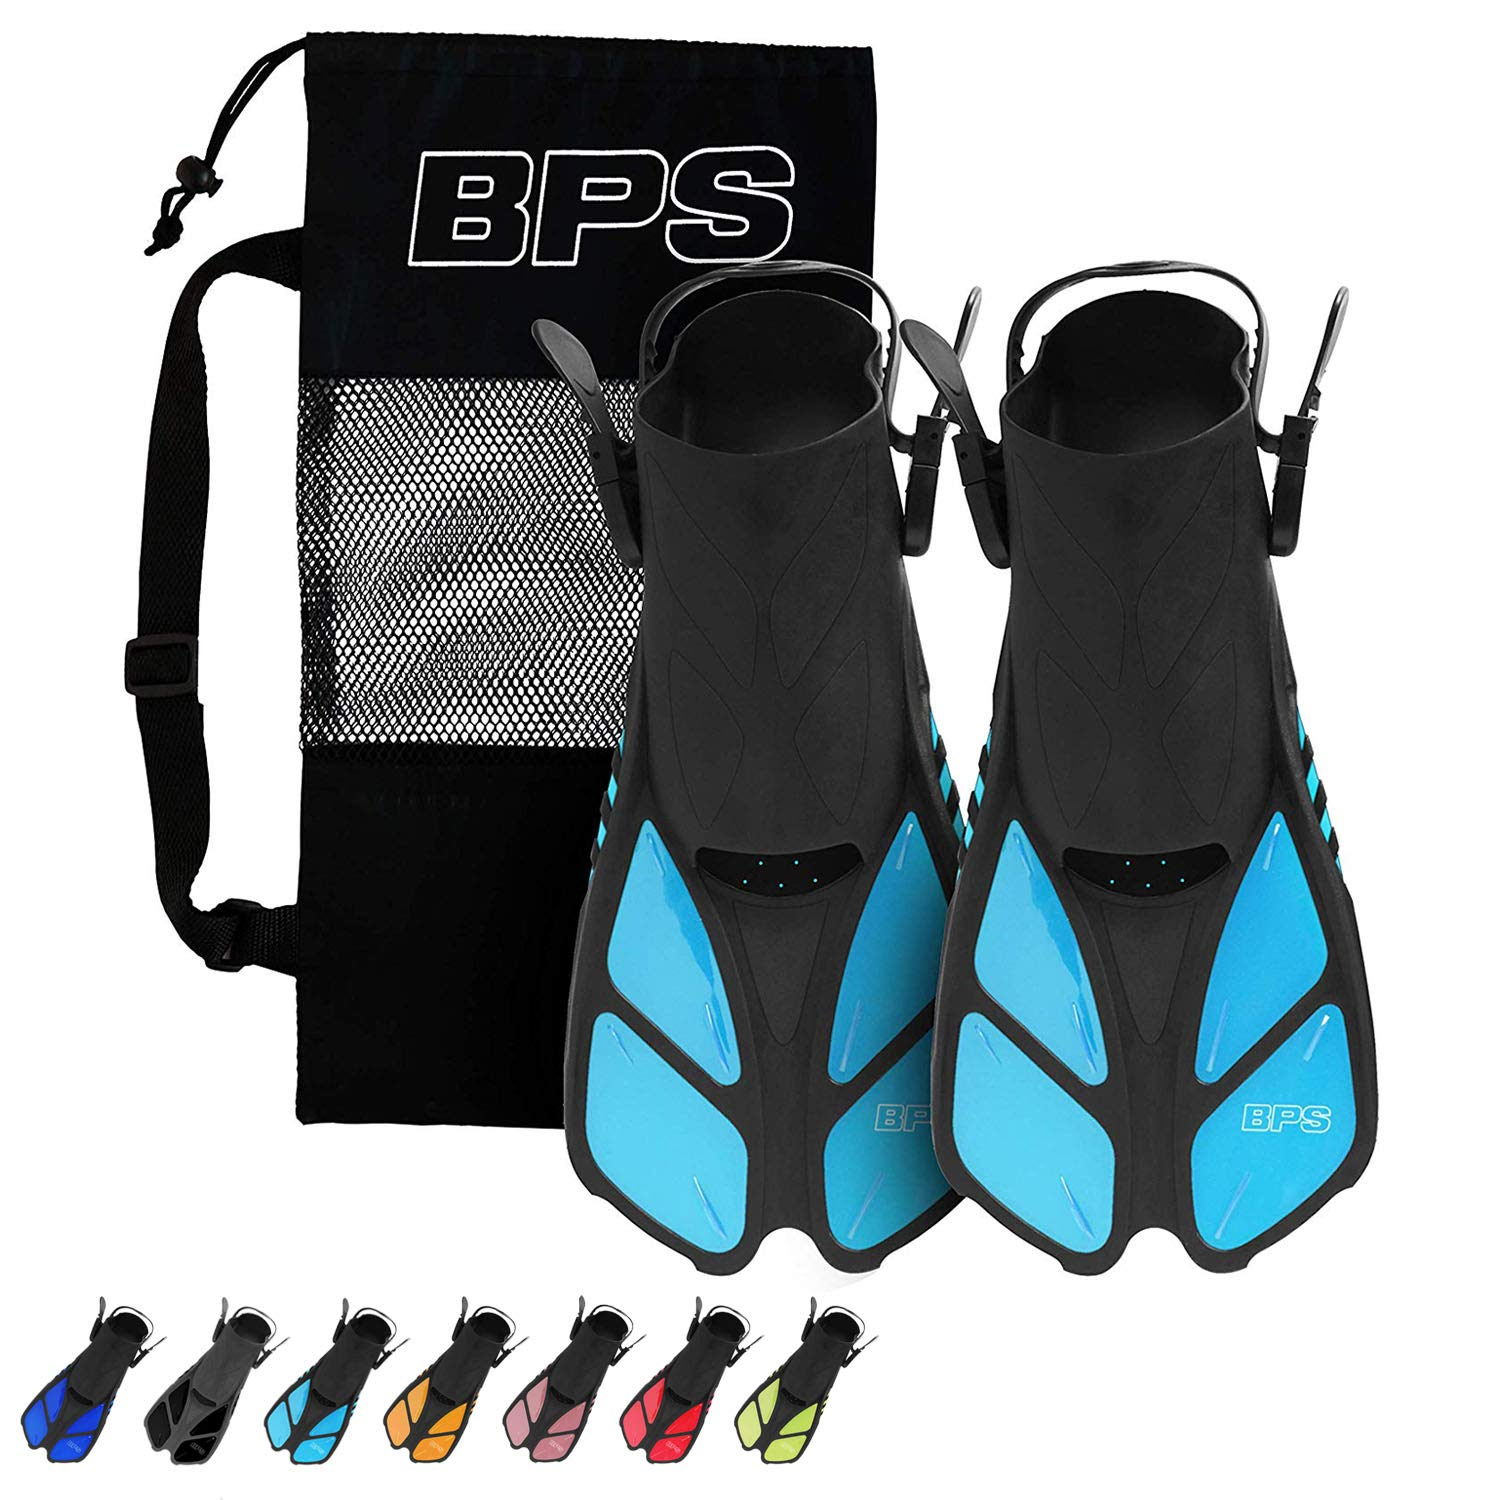 BPS Short Adjustable Swim Fins - Open-Toe and Open-Heel Design - for Diving, Snorkeling, Scuba Diving - Swim Flippers for Kids and Adults - Unisex - Comes with Bag for Storage (Light Blue - S/M) by BPS